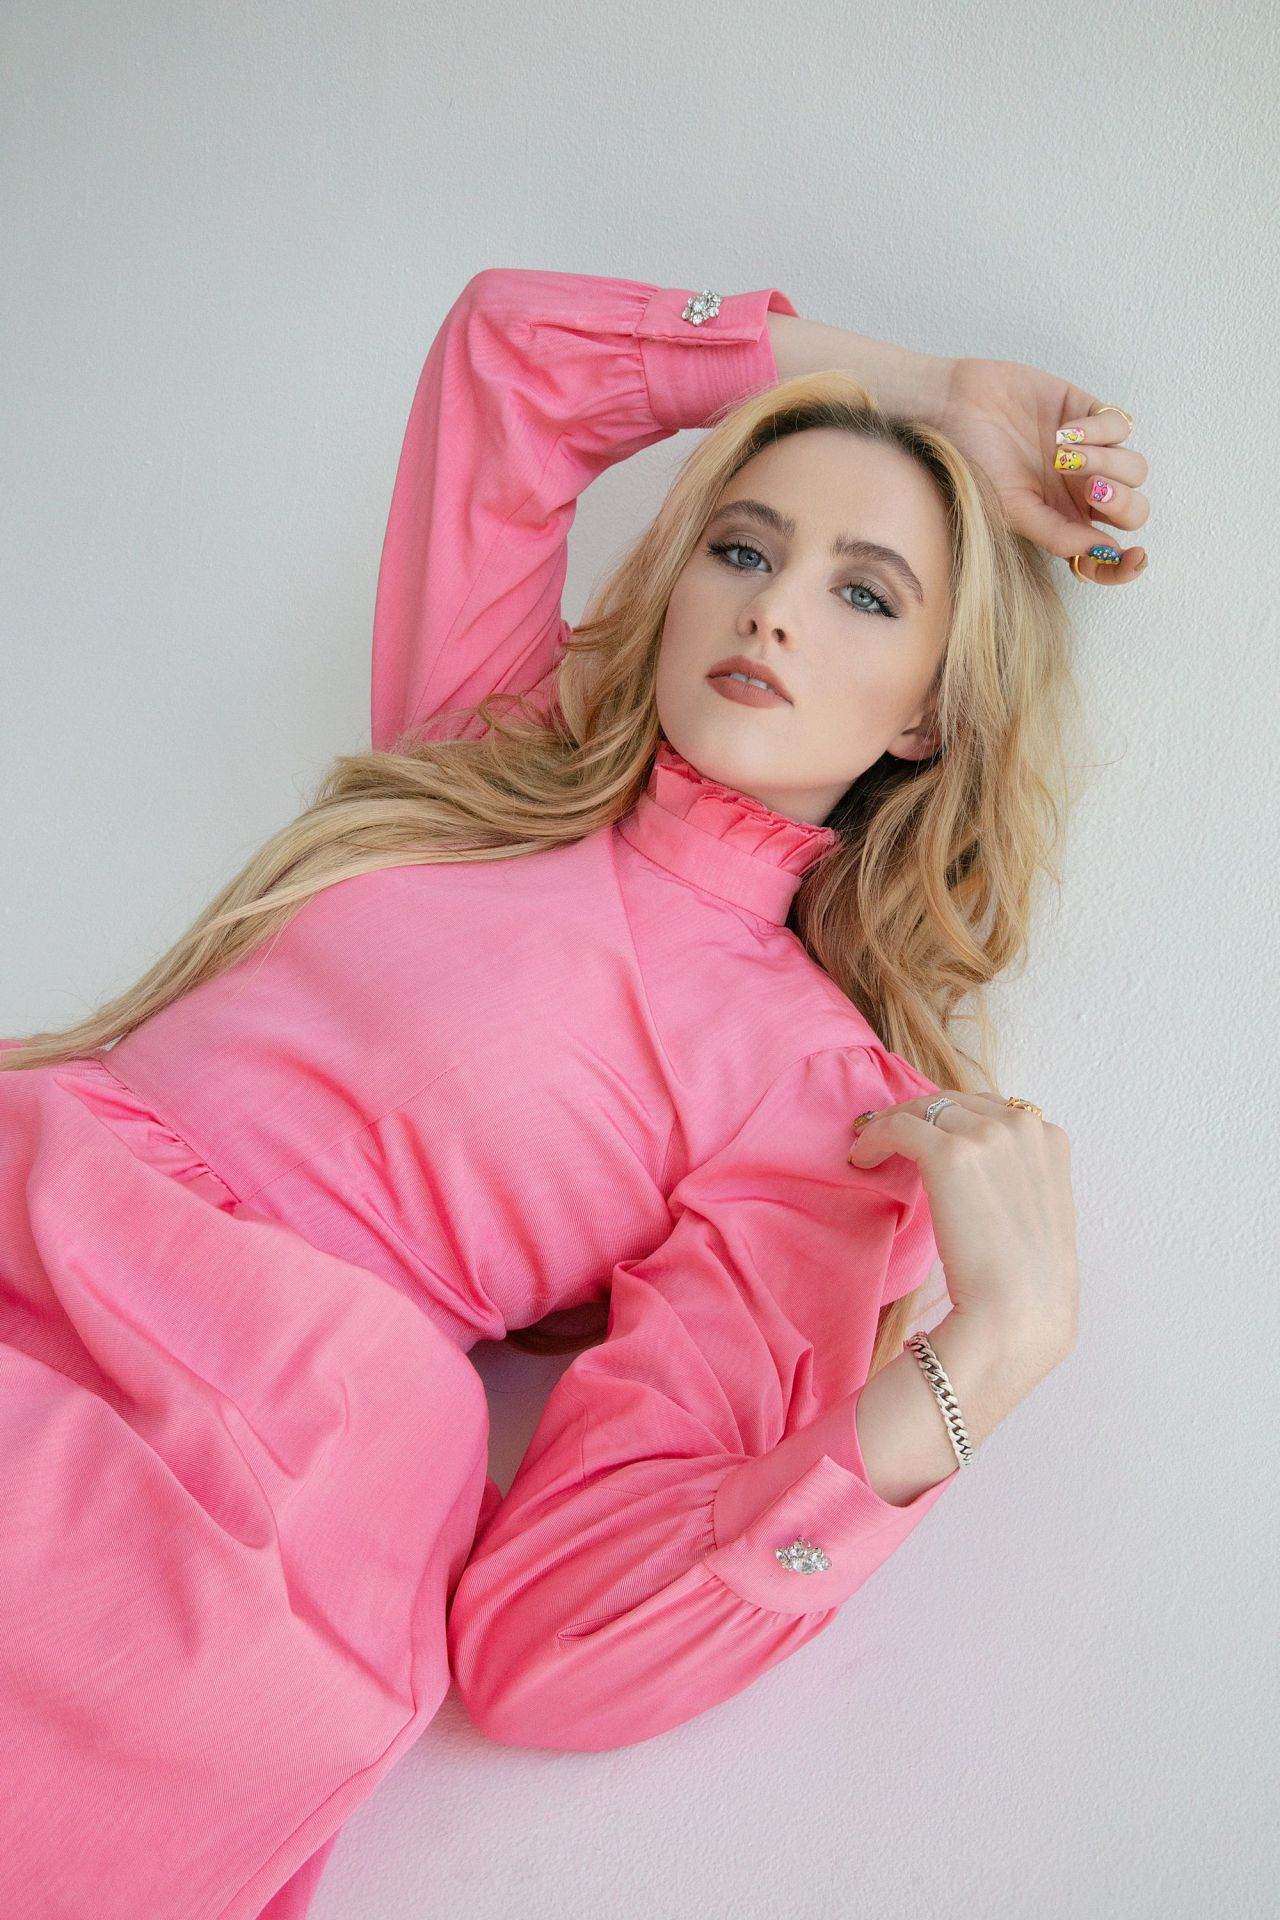 Kathryn Newton Photoshoot For Cosmopolitan 2019